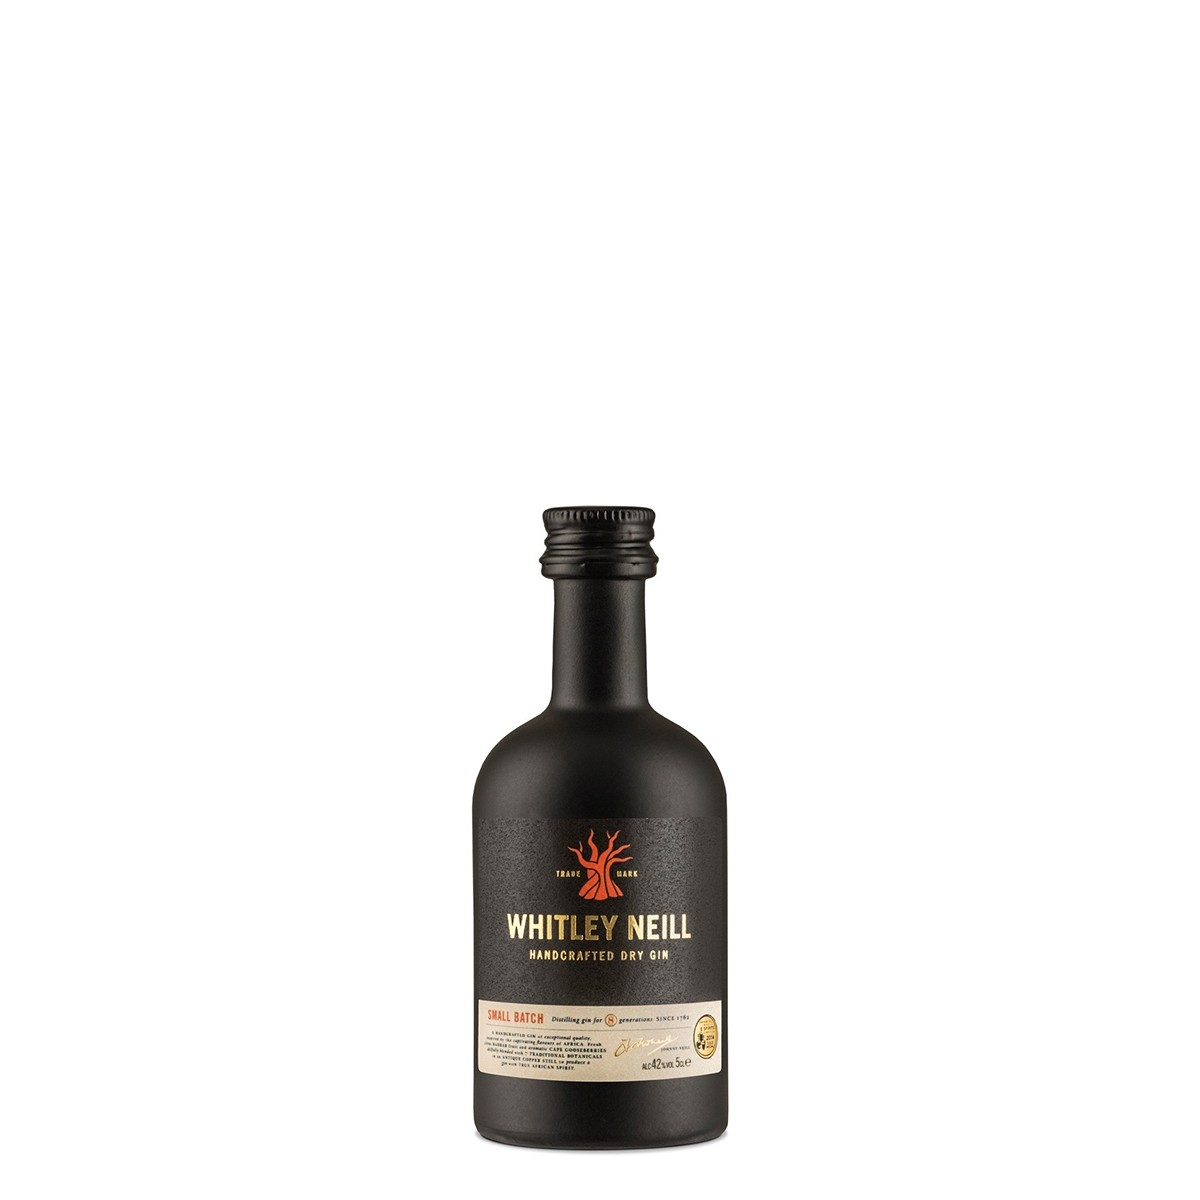 Whitley Neill Handcrafted Dry Gin 50 ml